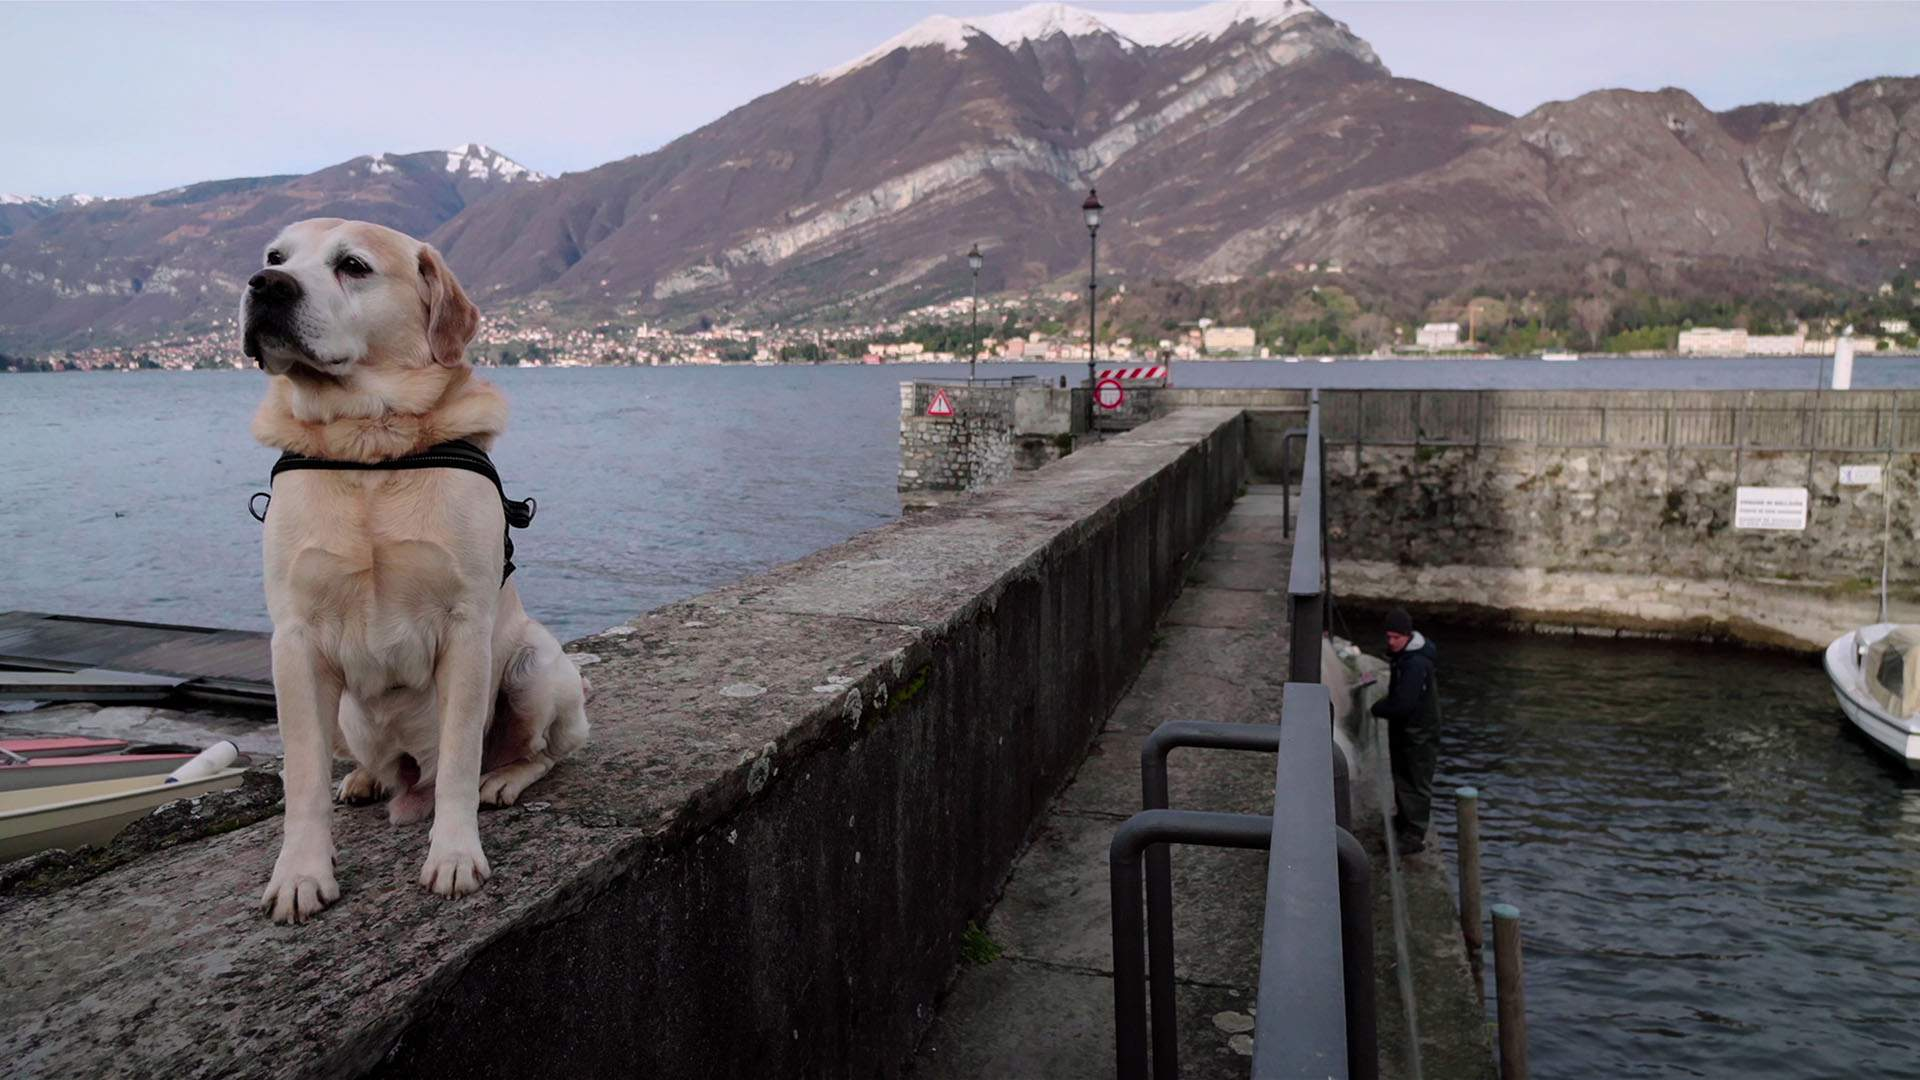 Netflix's Adorable 'Dogs' Docuseries Has Your Heartwarming Holiday Binge Session Sorted